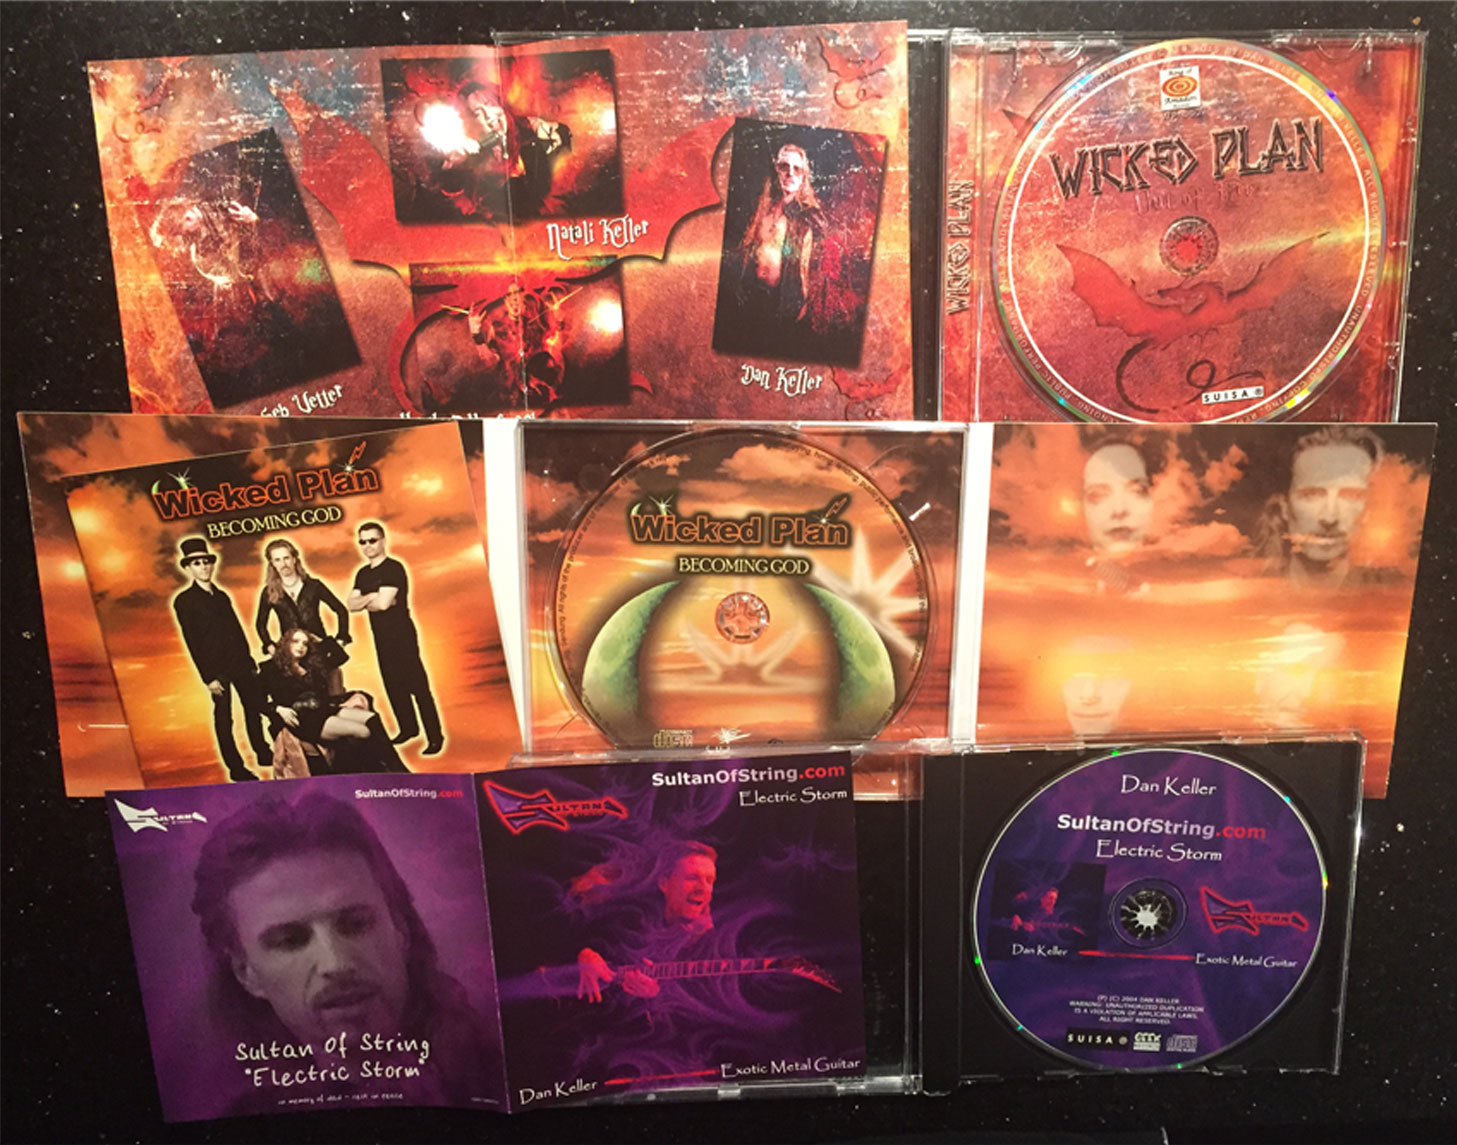 'Out of Fire' + 'Becoming God' + 'Electric Storm' (3 CDs) + signed Autograph Card